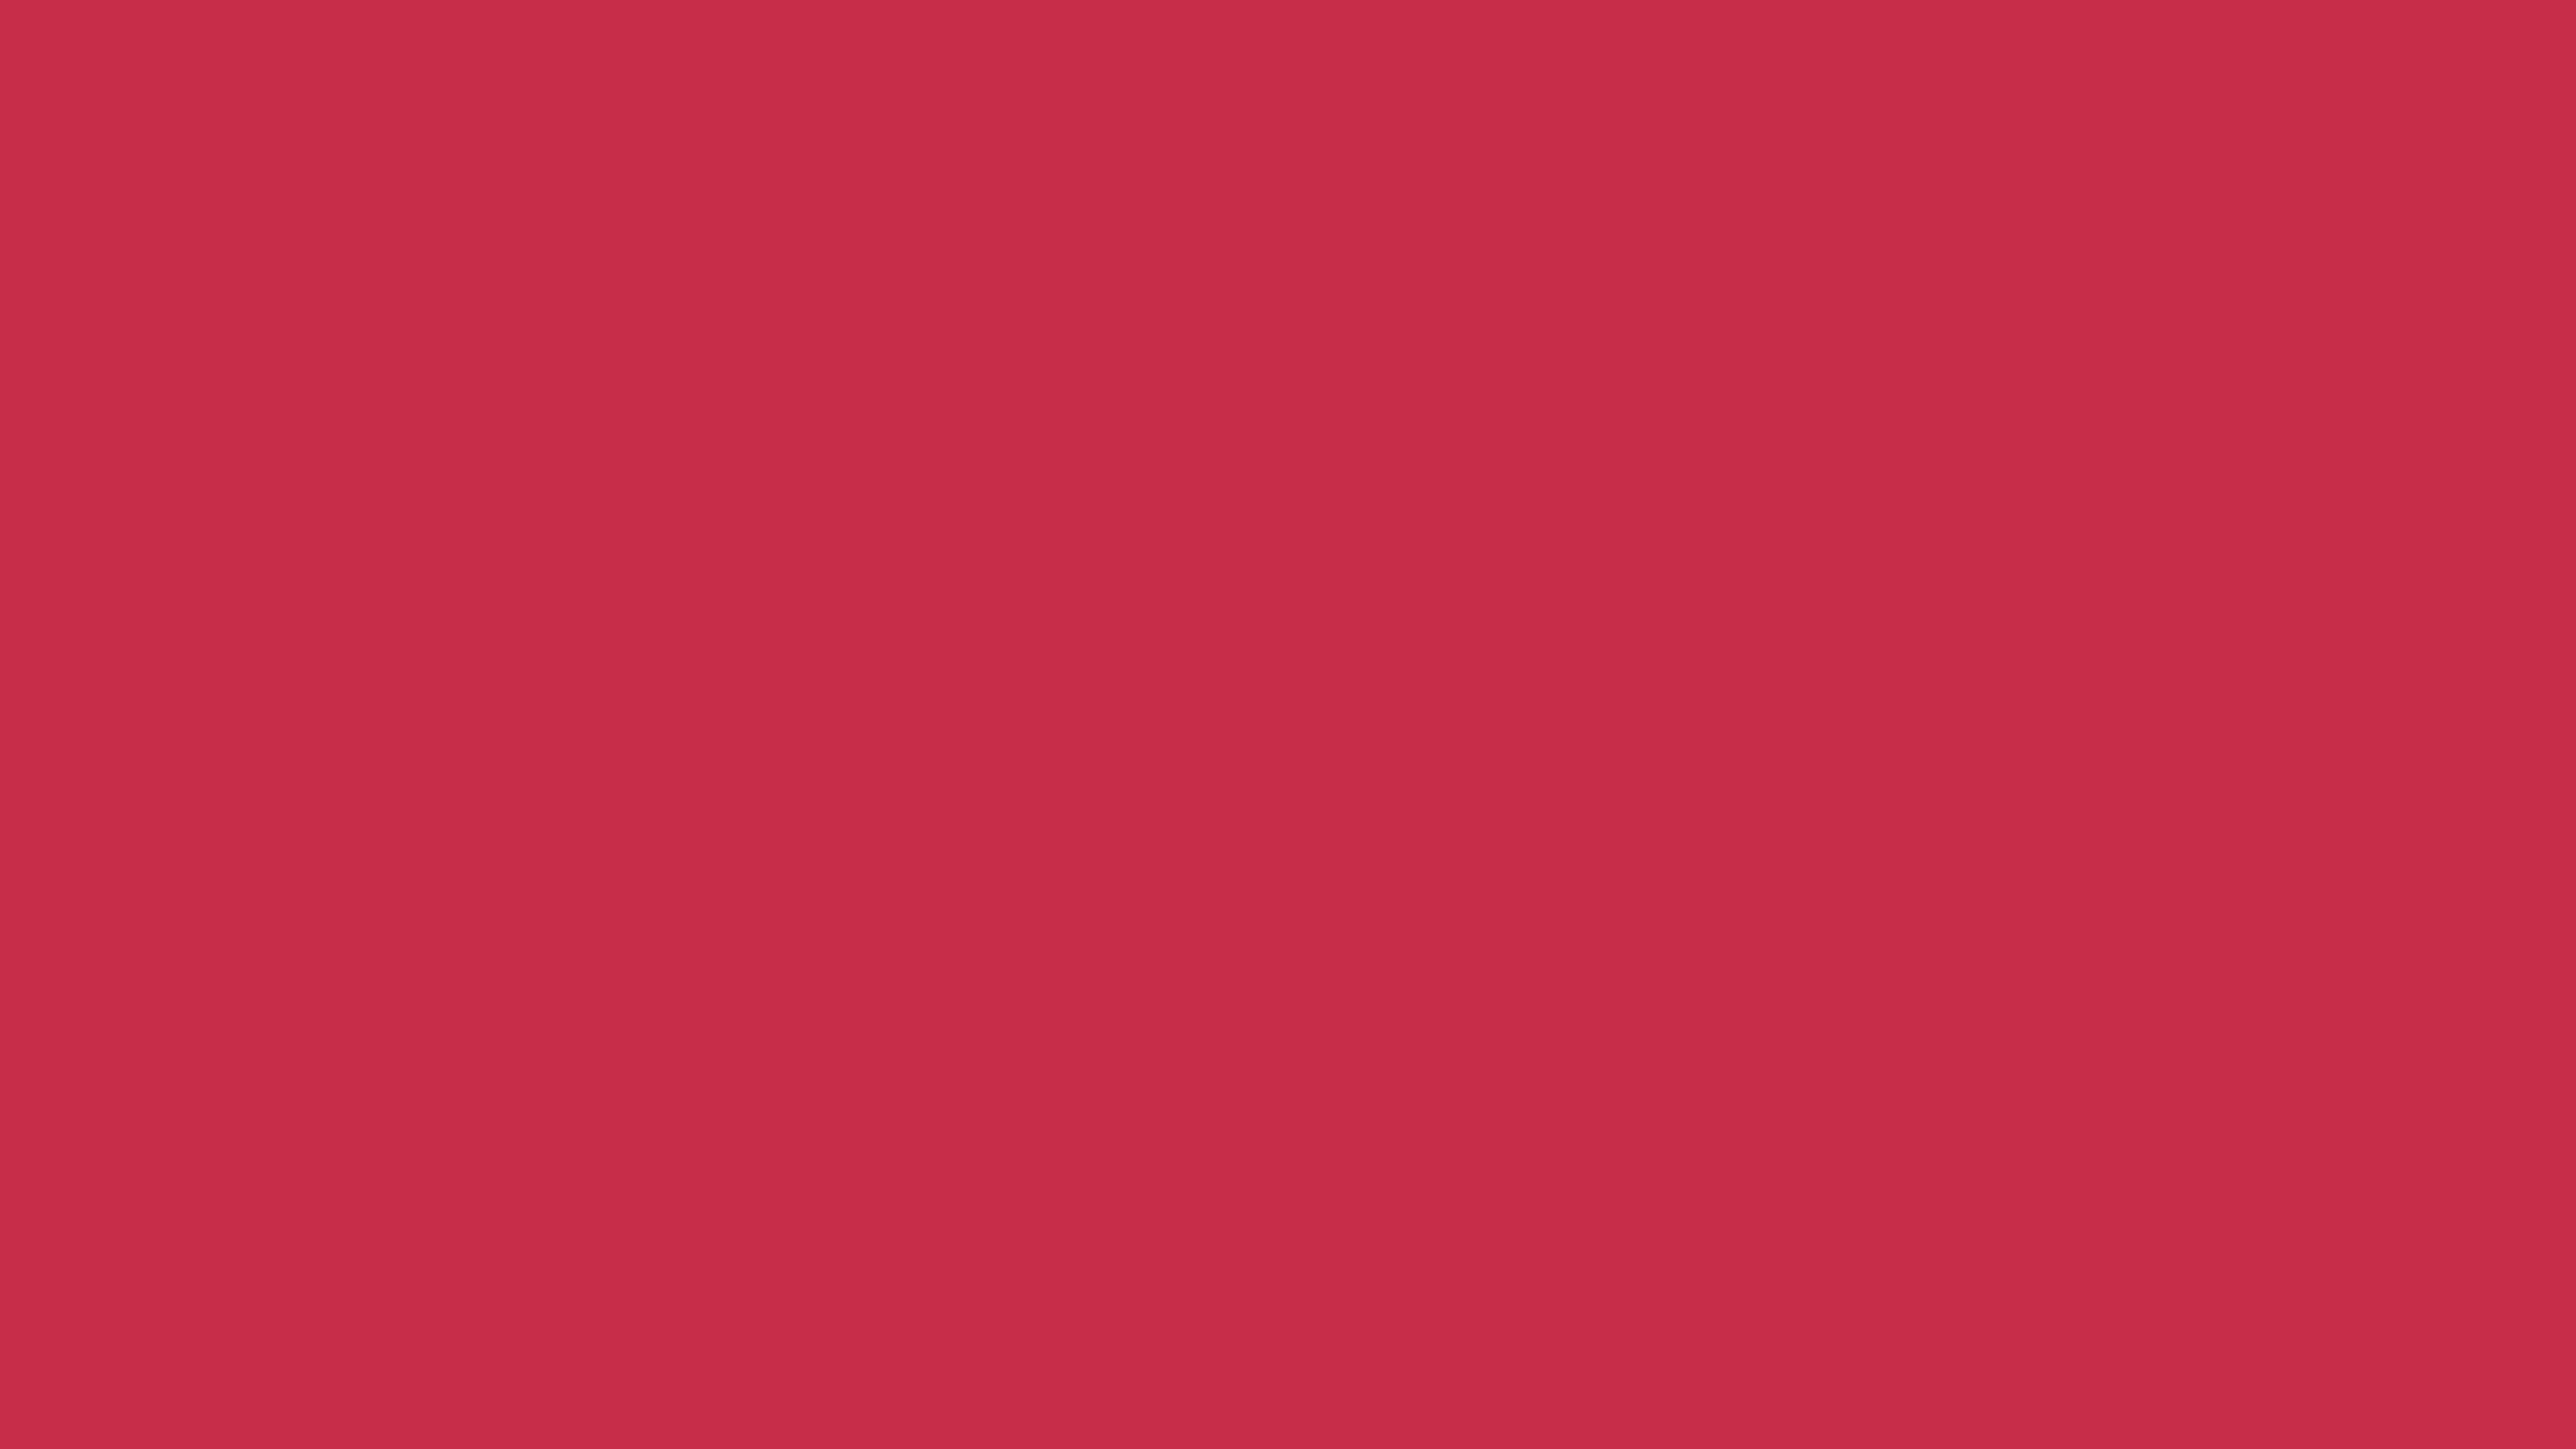 4096x2304 French Raspberry Solid Color Background